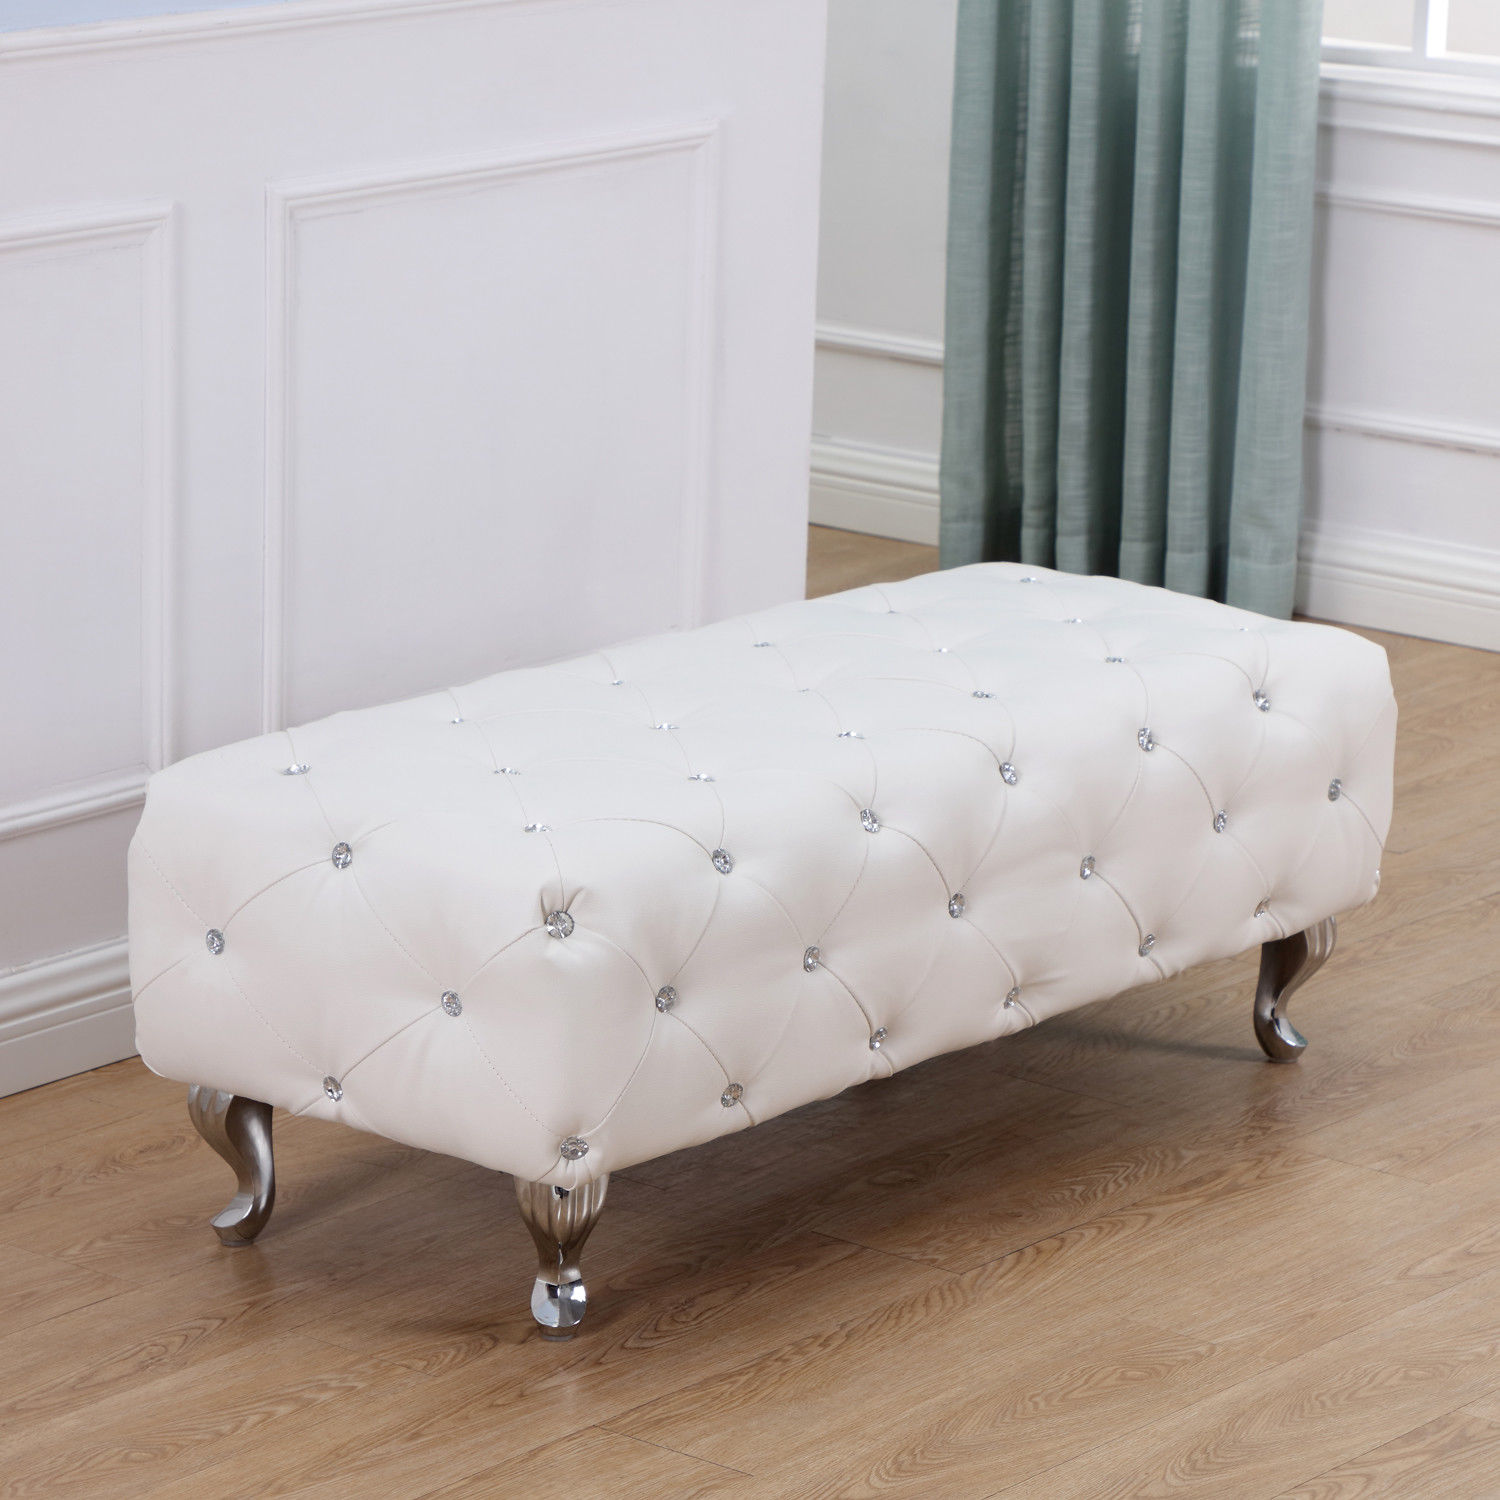 HomCom Modern Tufted PU Leather Bench With Crystal Accents (White)